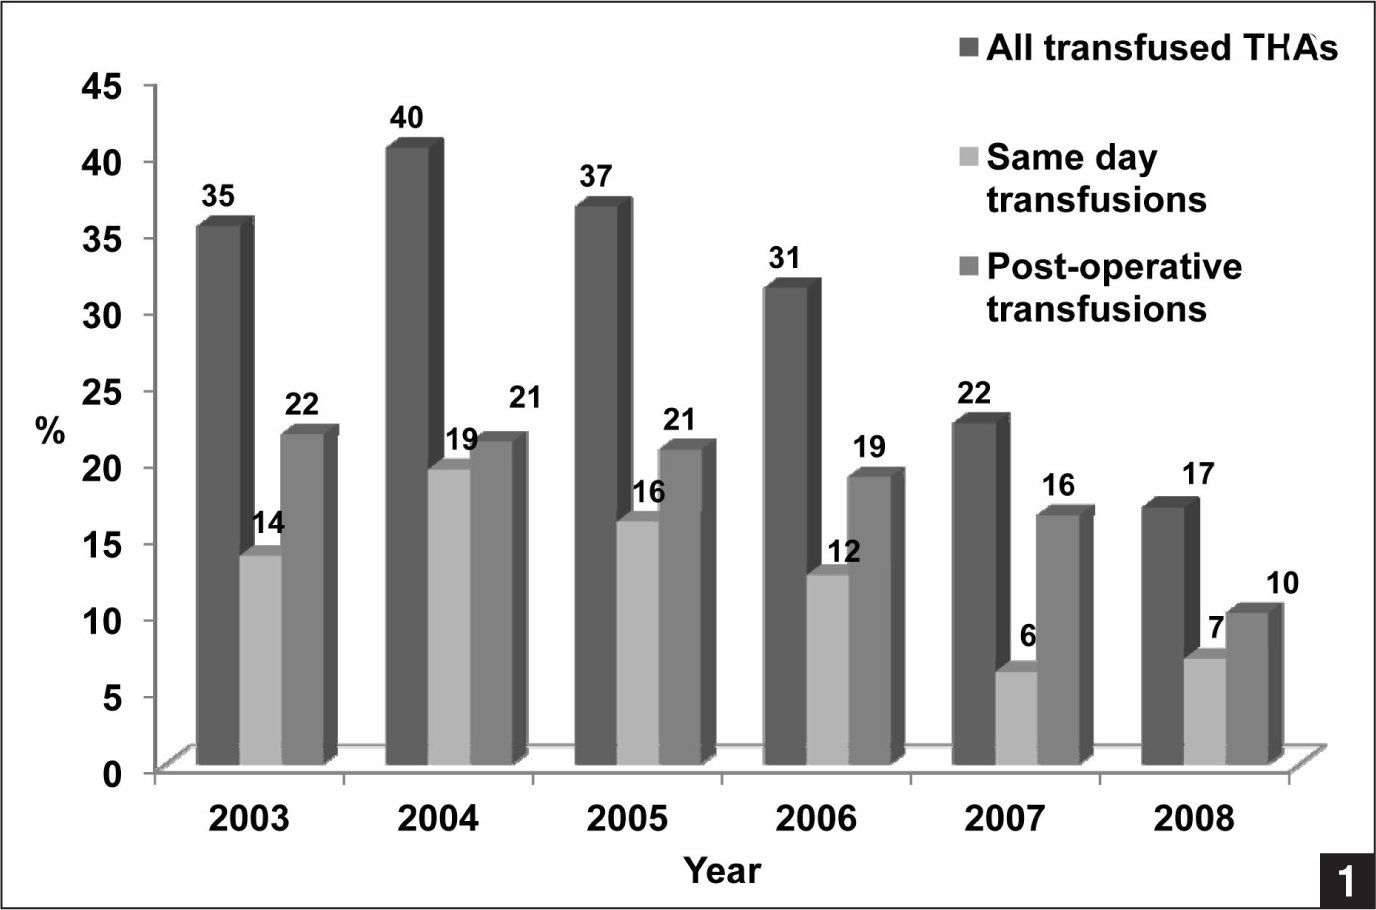 Proportion of transfused total hip arthroplasties (THAs) per year.